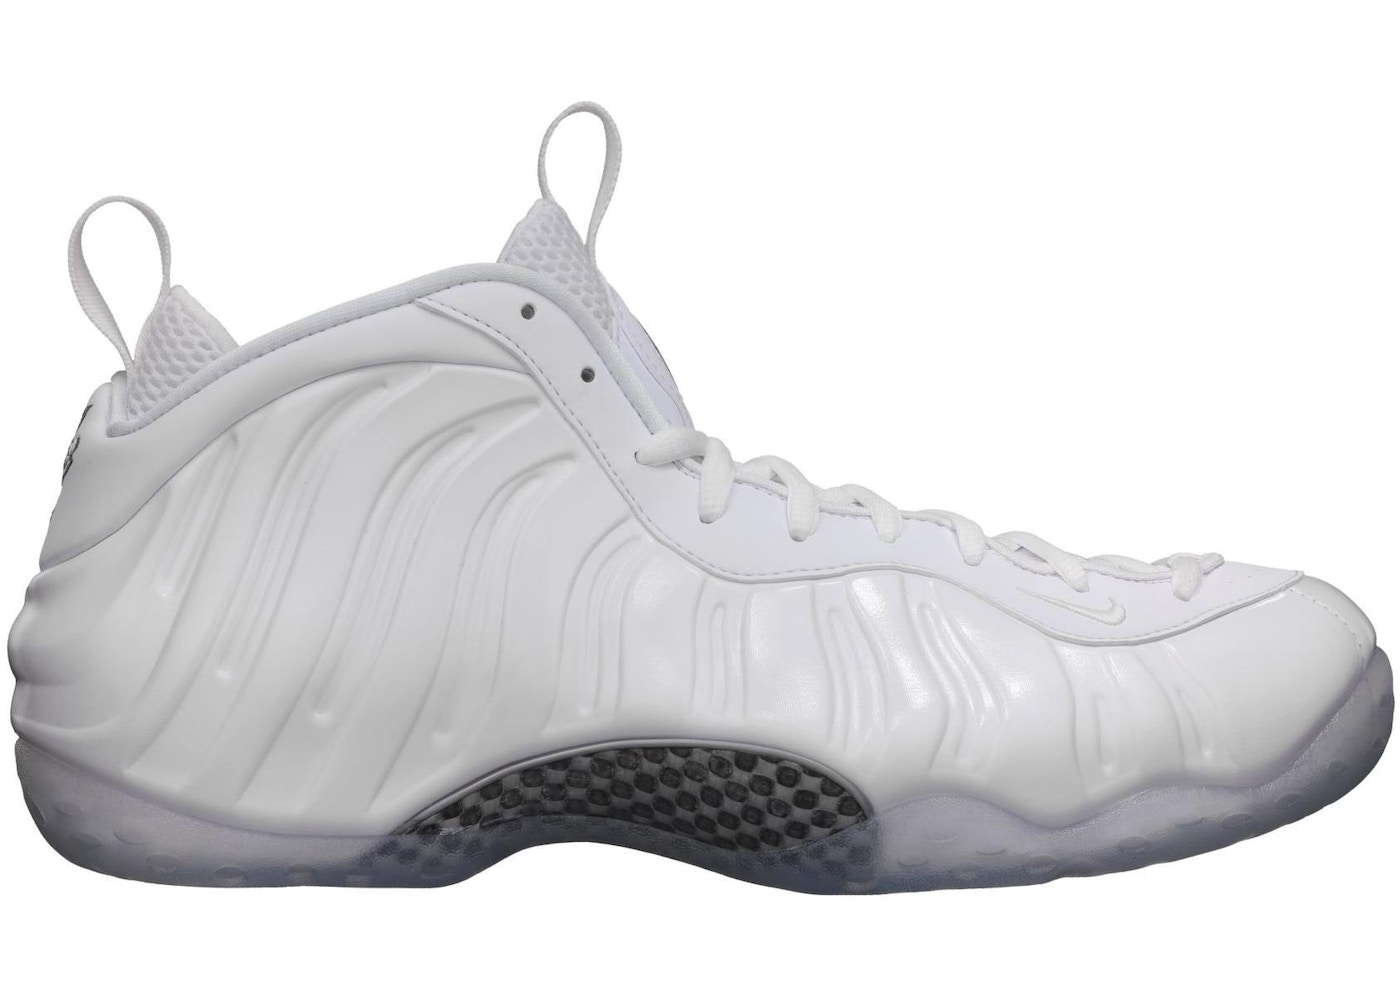 buy online 25bad 3eb73 Air Foamposite One White Out - 314996-100